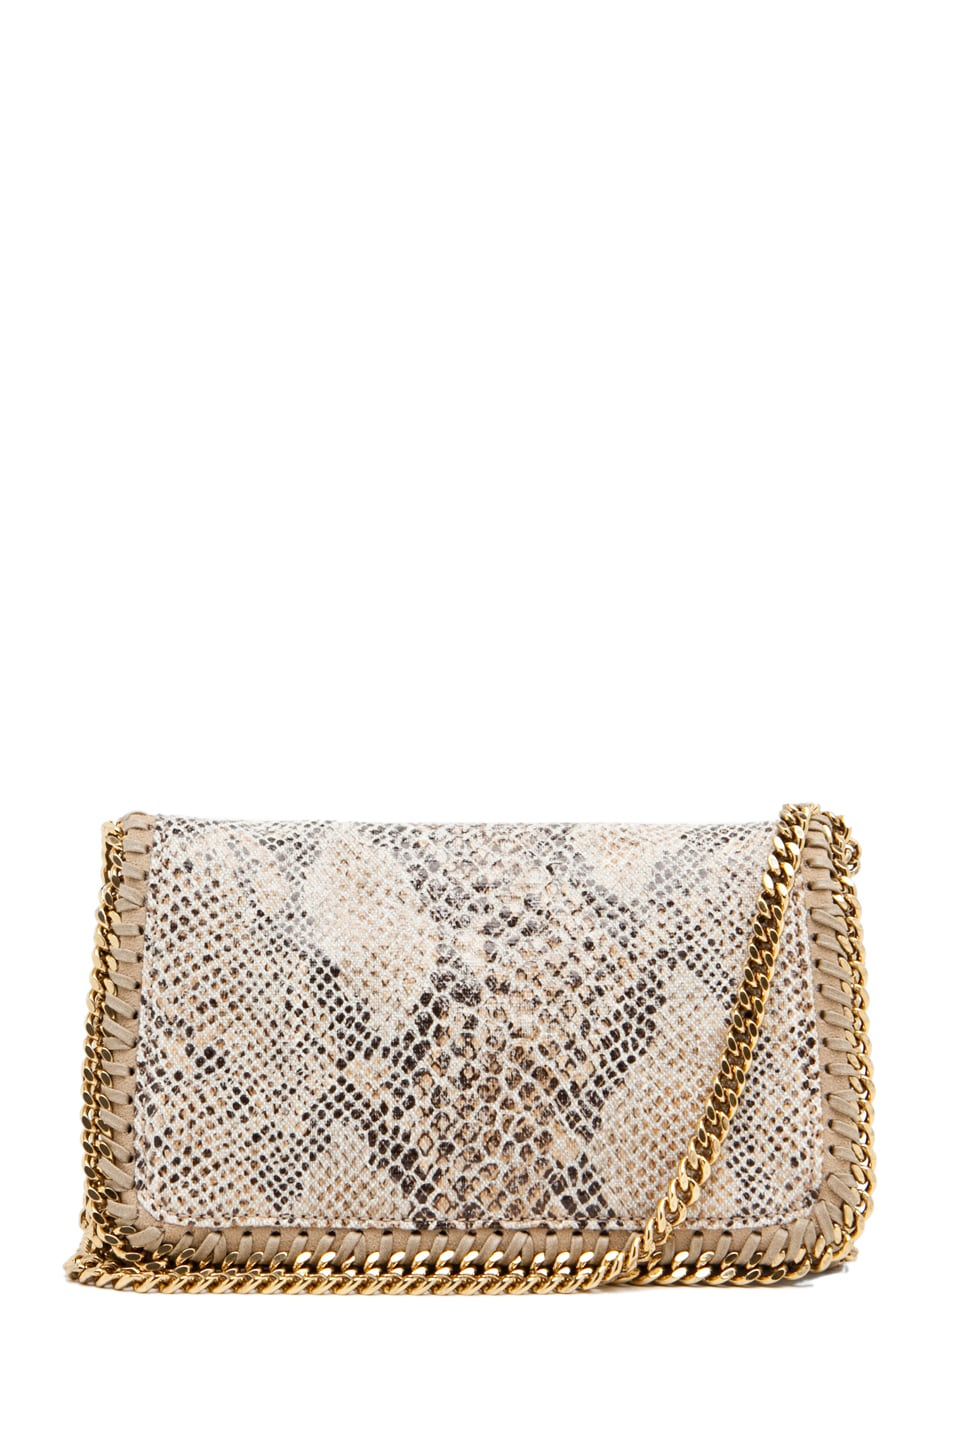 Image 1 of Stella McCartney Eco Snake Clutch in Caramel